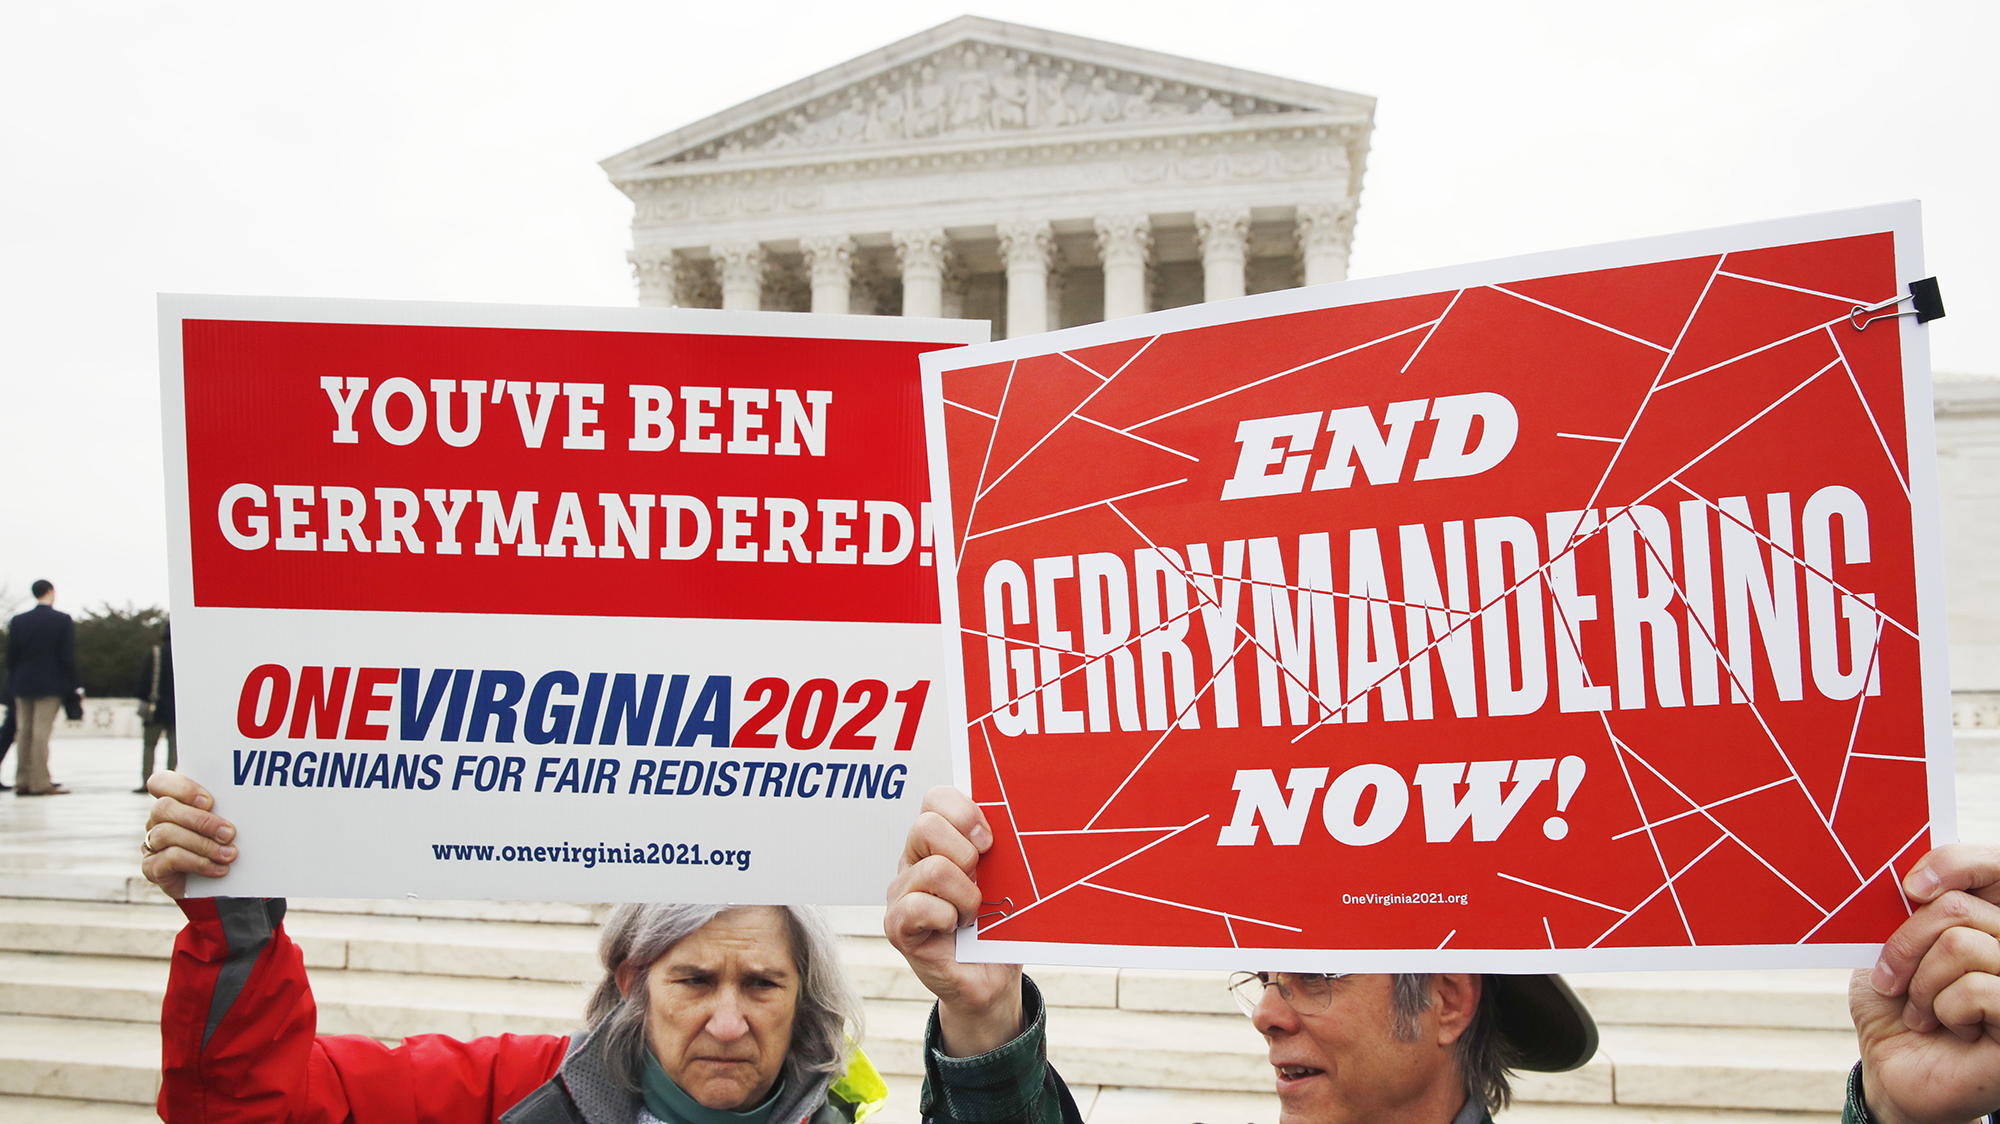 Supreme Court punts on gerrymandering decision